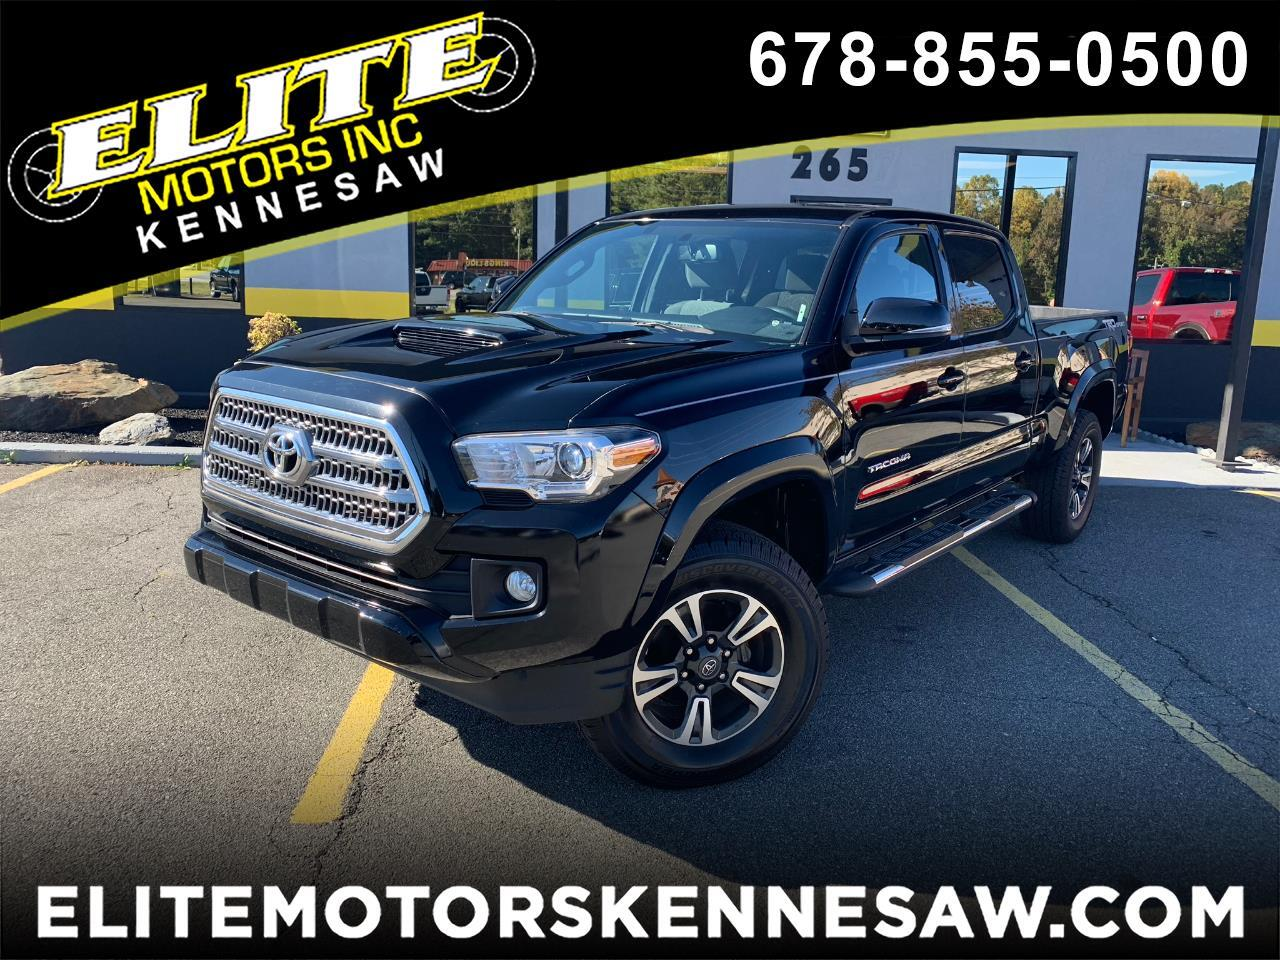 2016 Toyota Tacoma SR5 Double Cab Super Long Bed V6 5AT 2WD